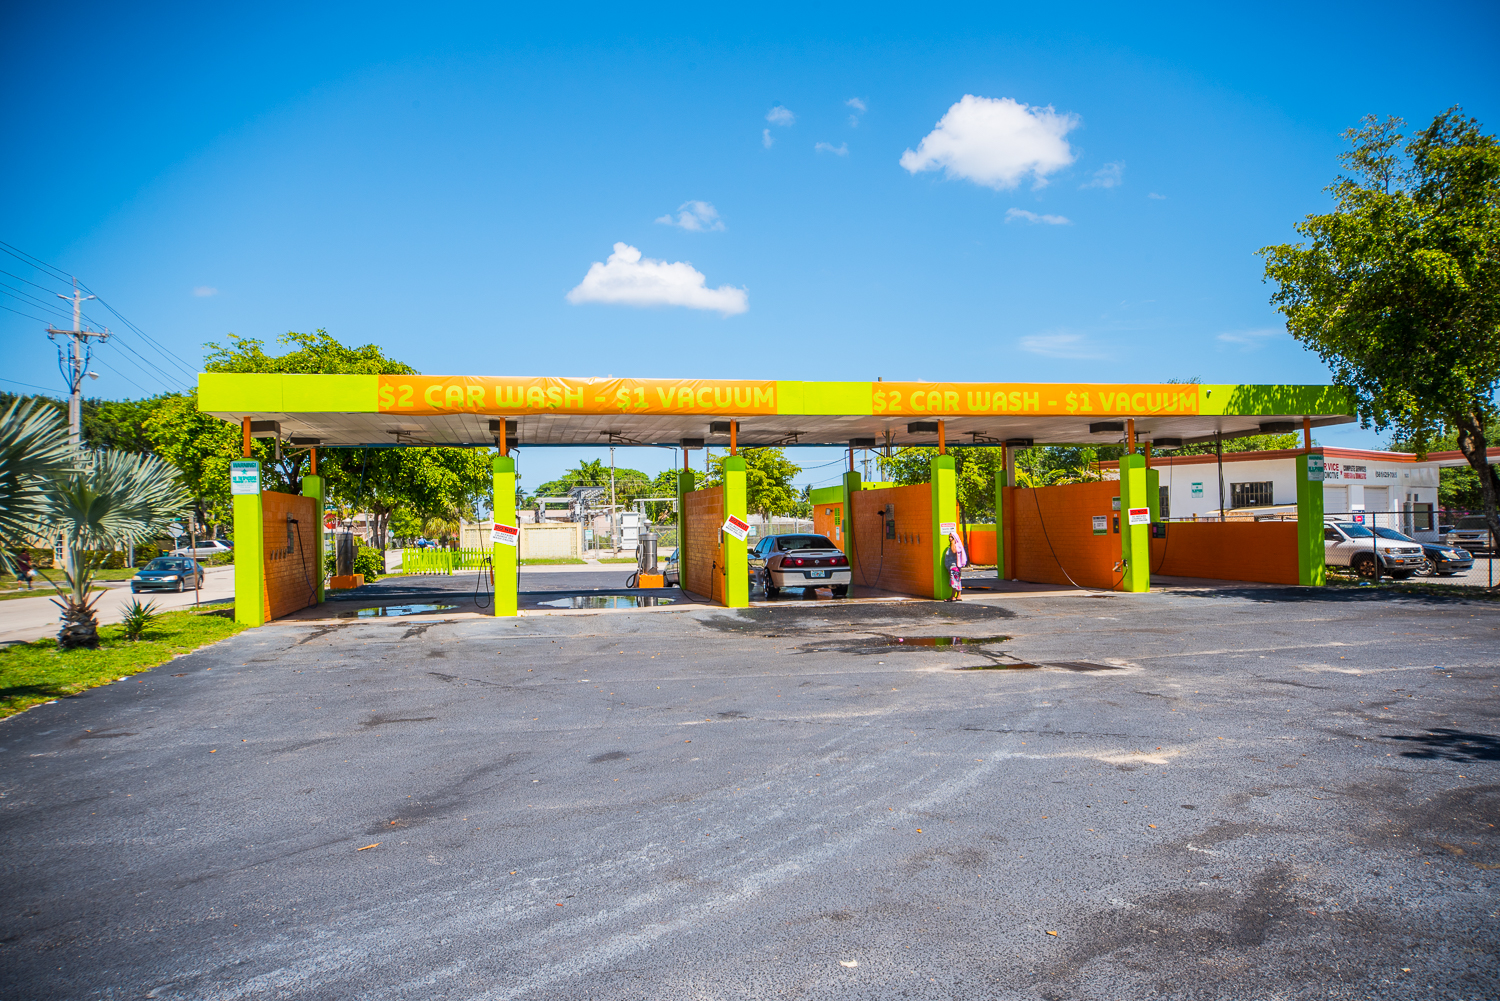 1502 S. Dixie Hwy, City of Lake Worth, Florida